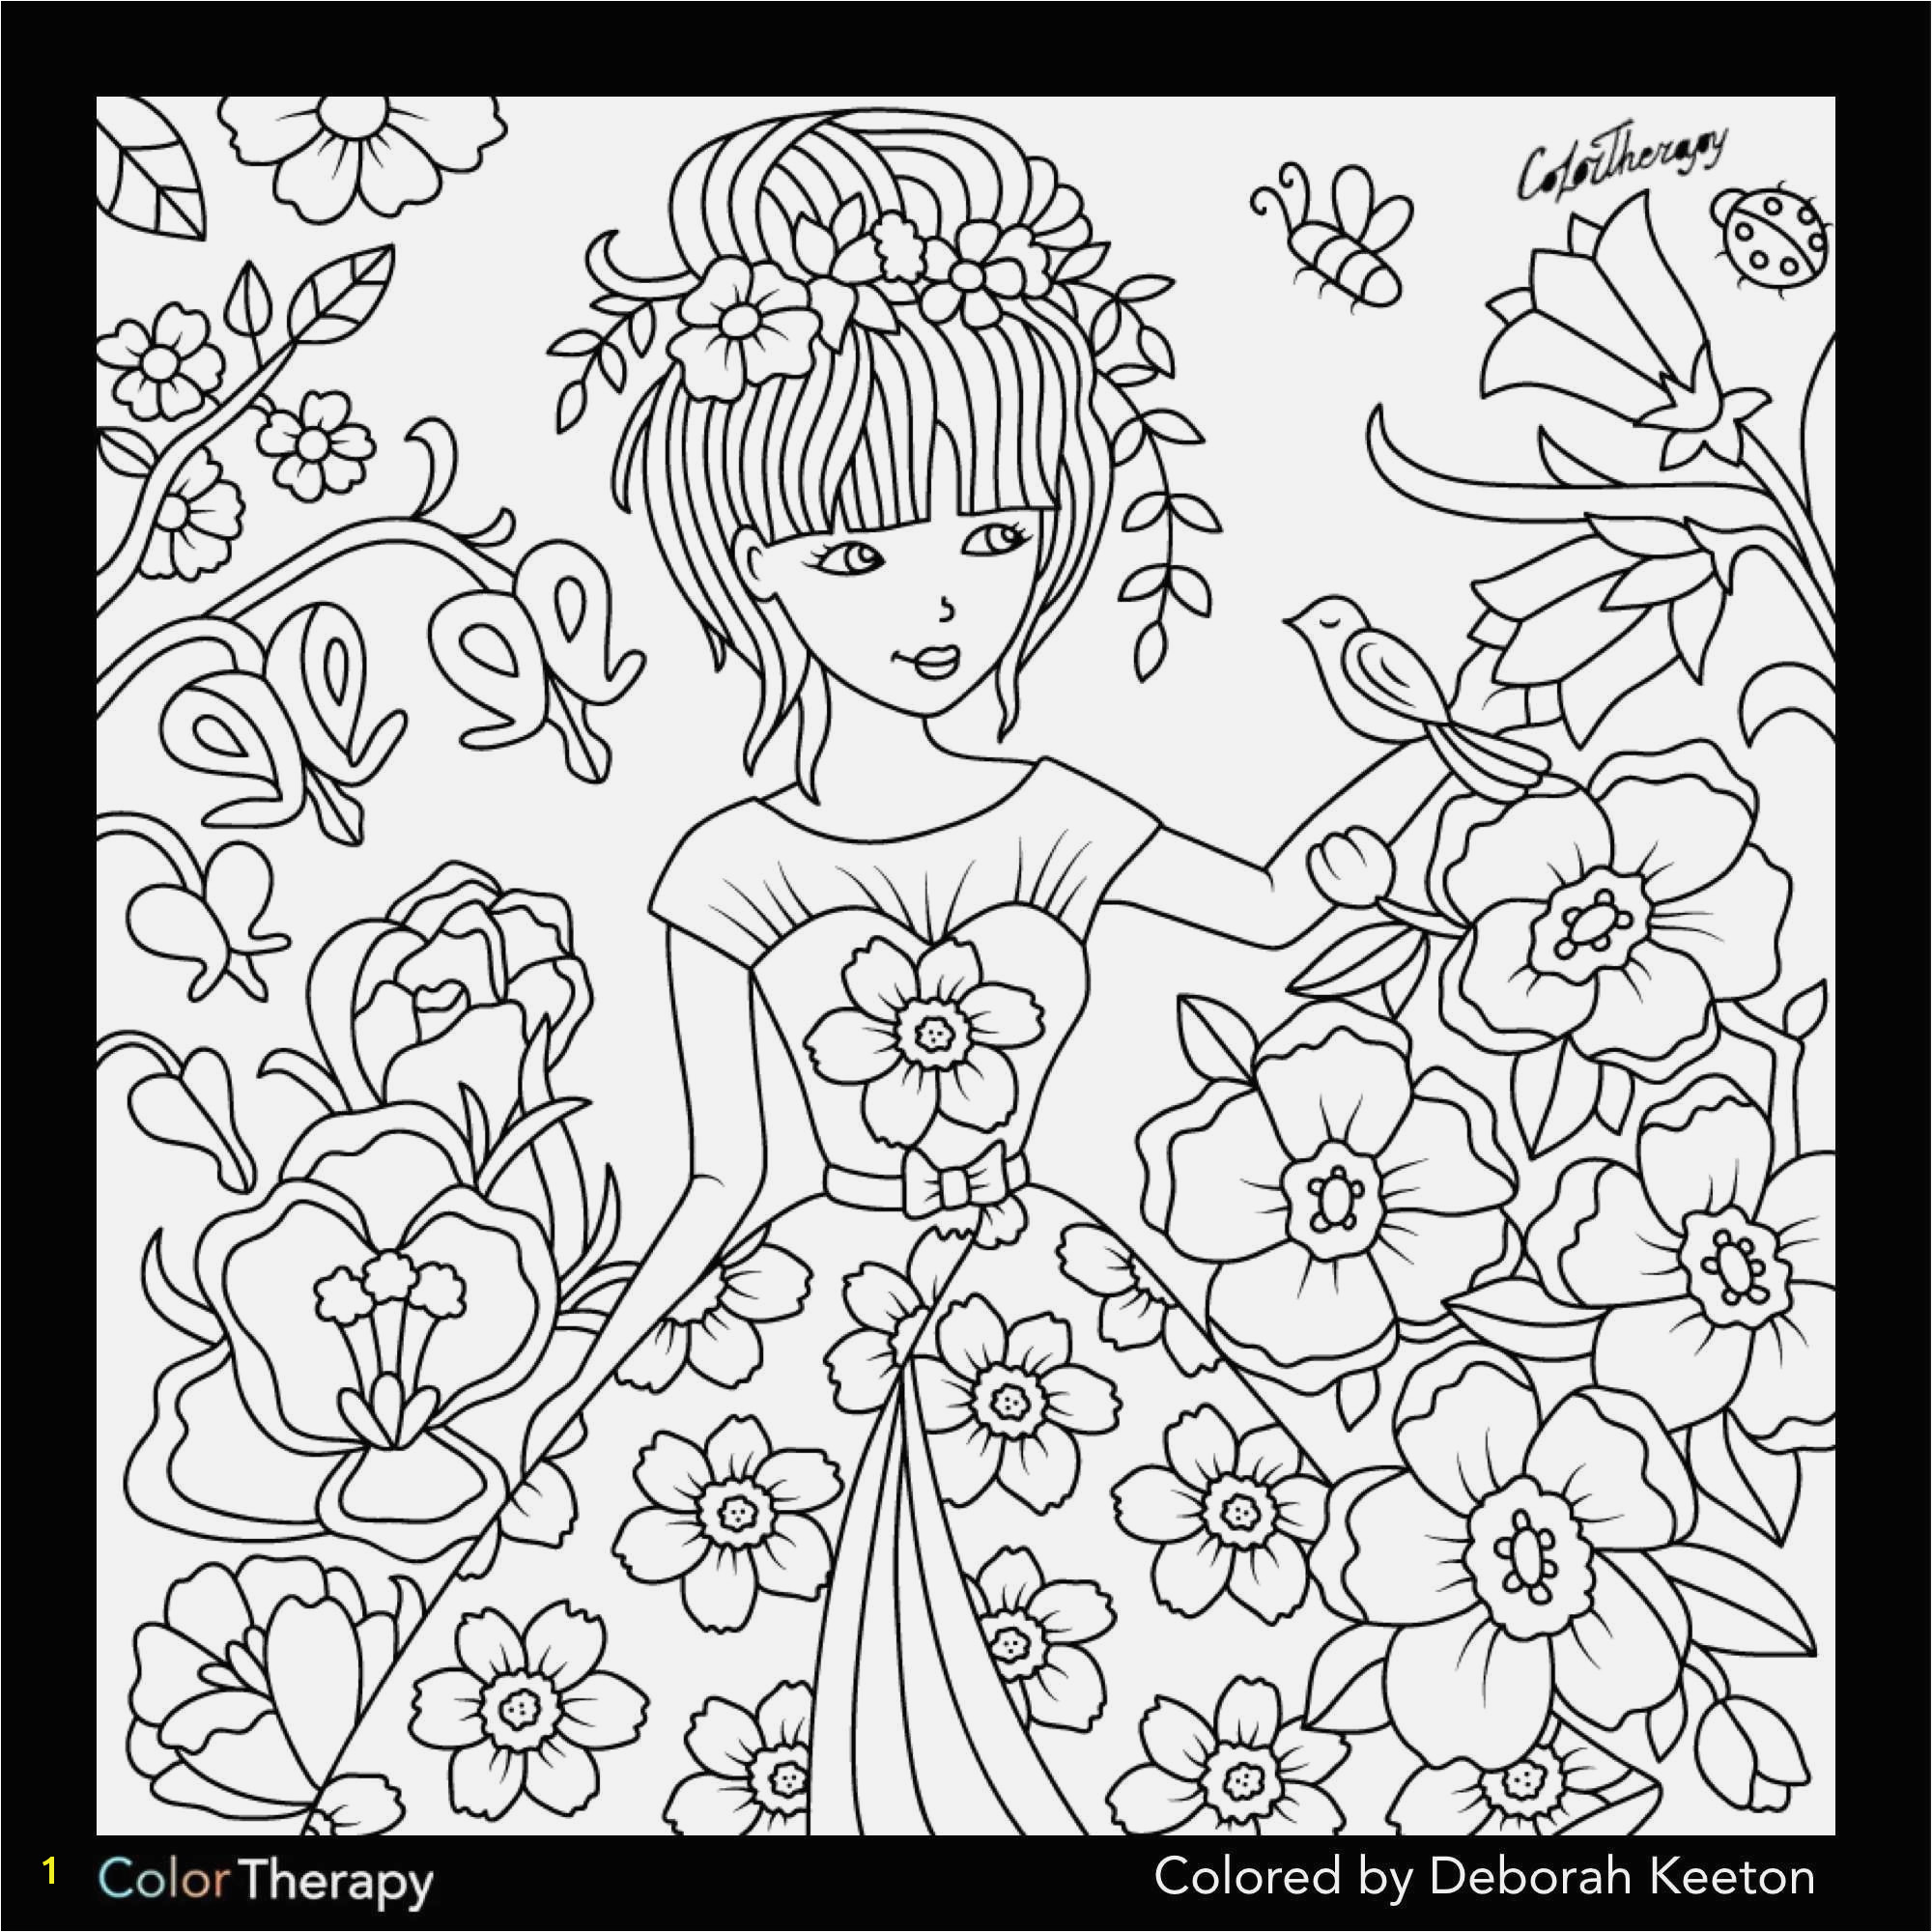 Friendship Coloring Pages Free Free Superhero Coloring Pages New Free Printable Art 0 0d Friendship